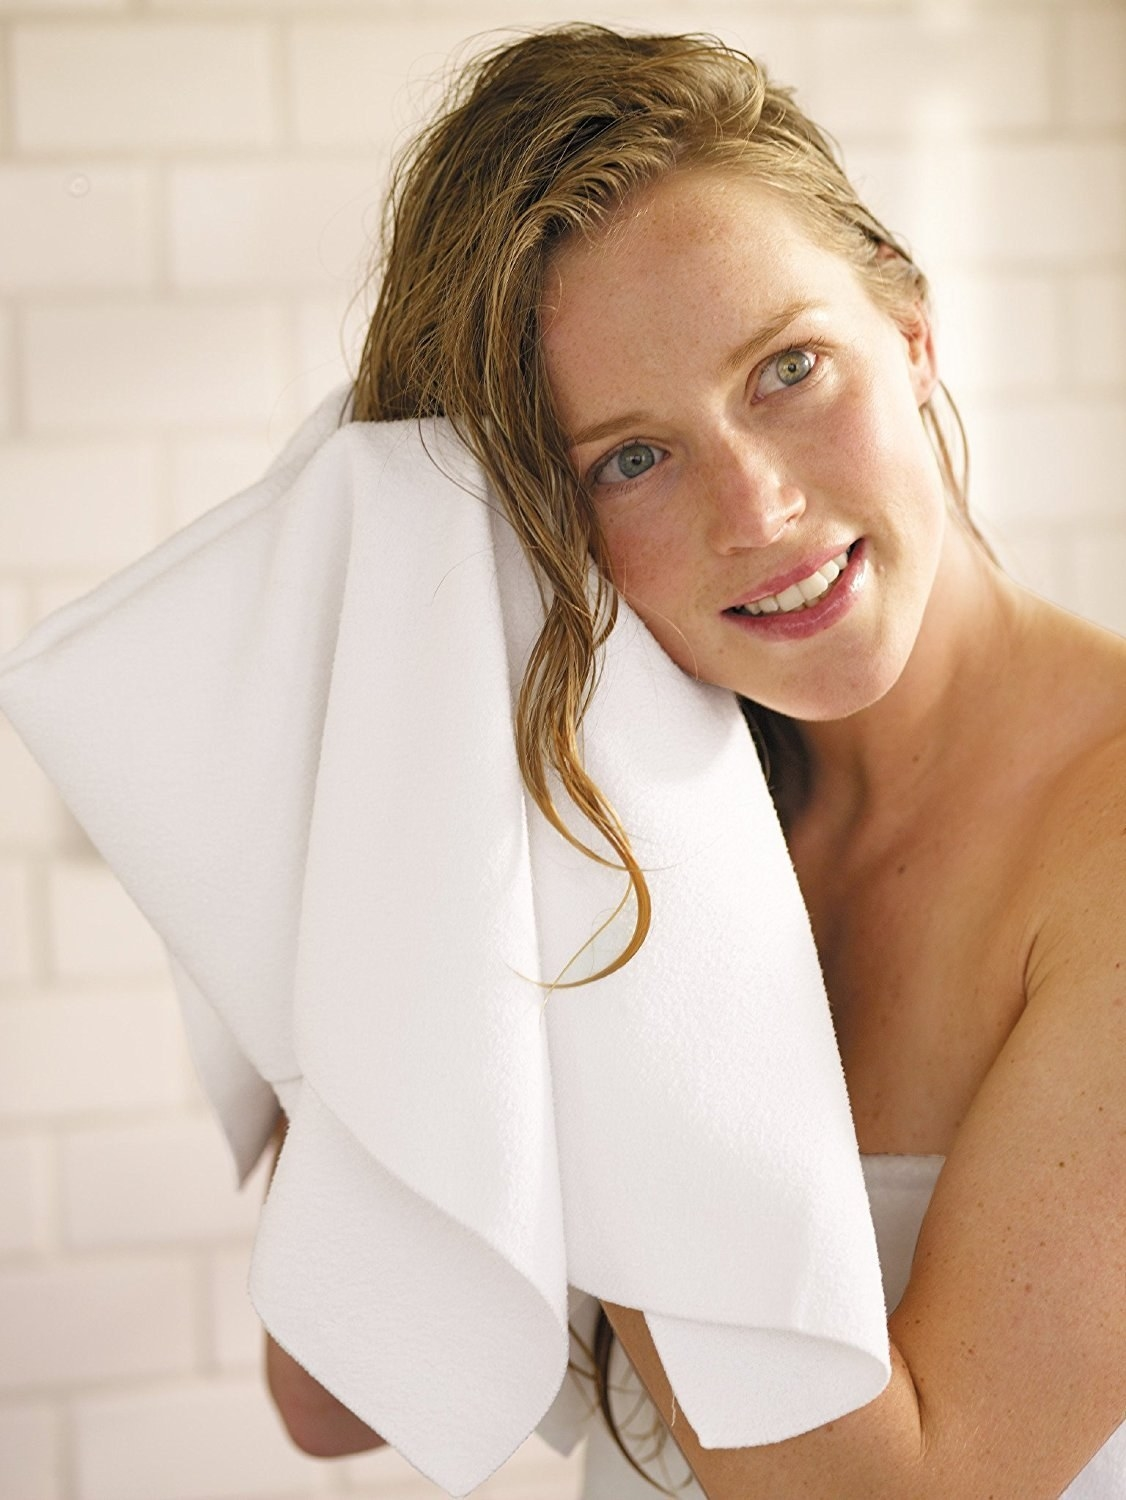 model uses towel to dry hair